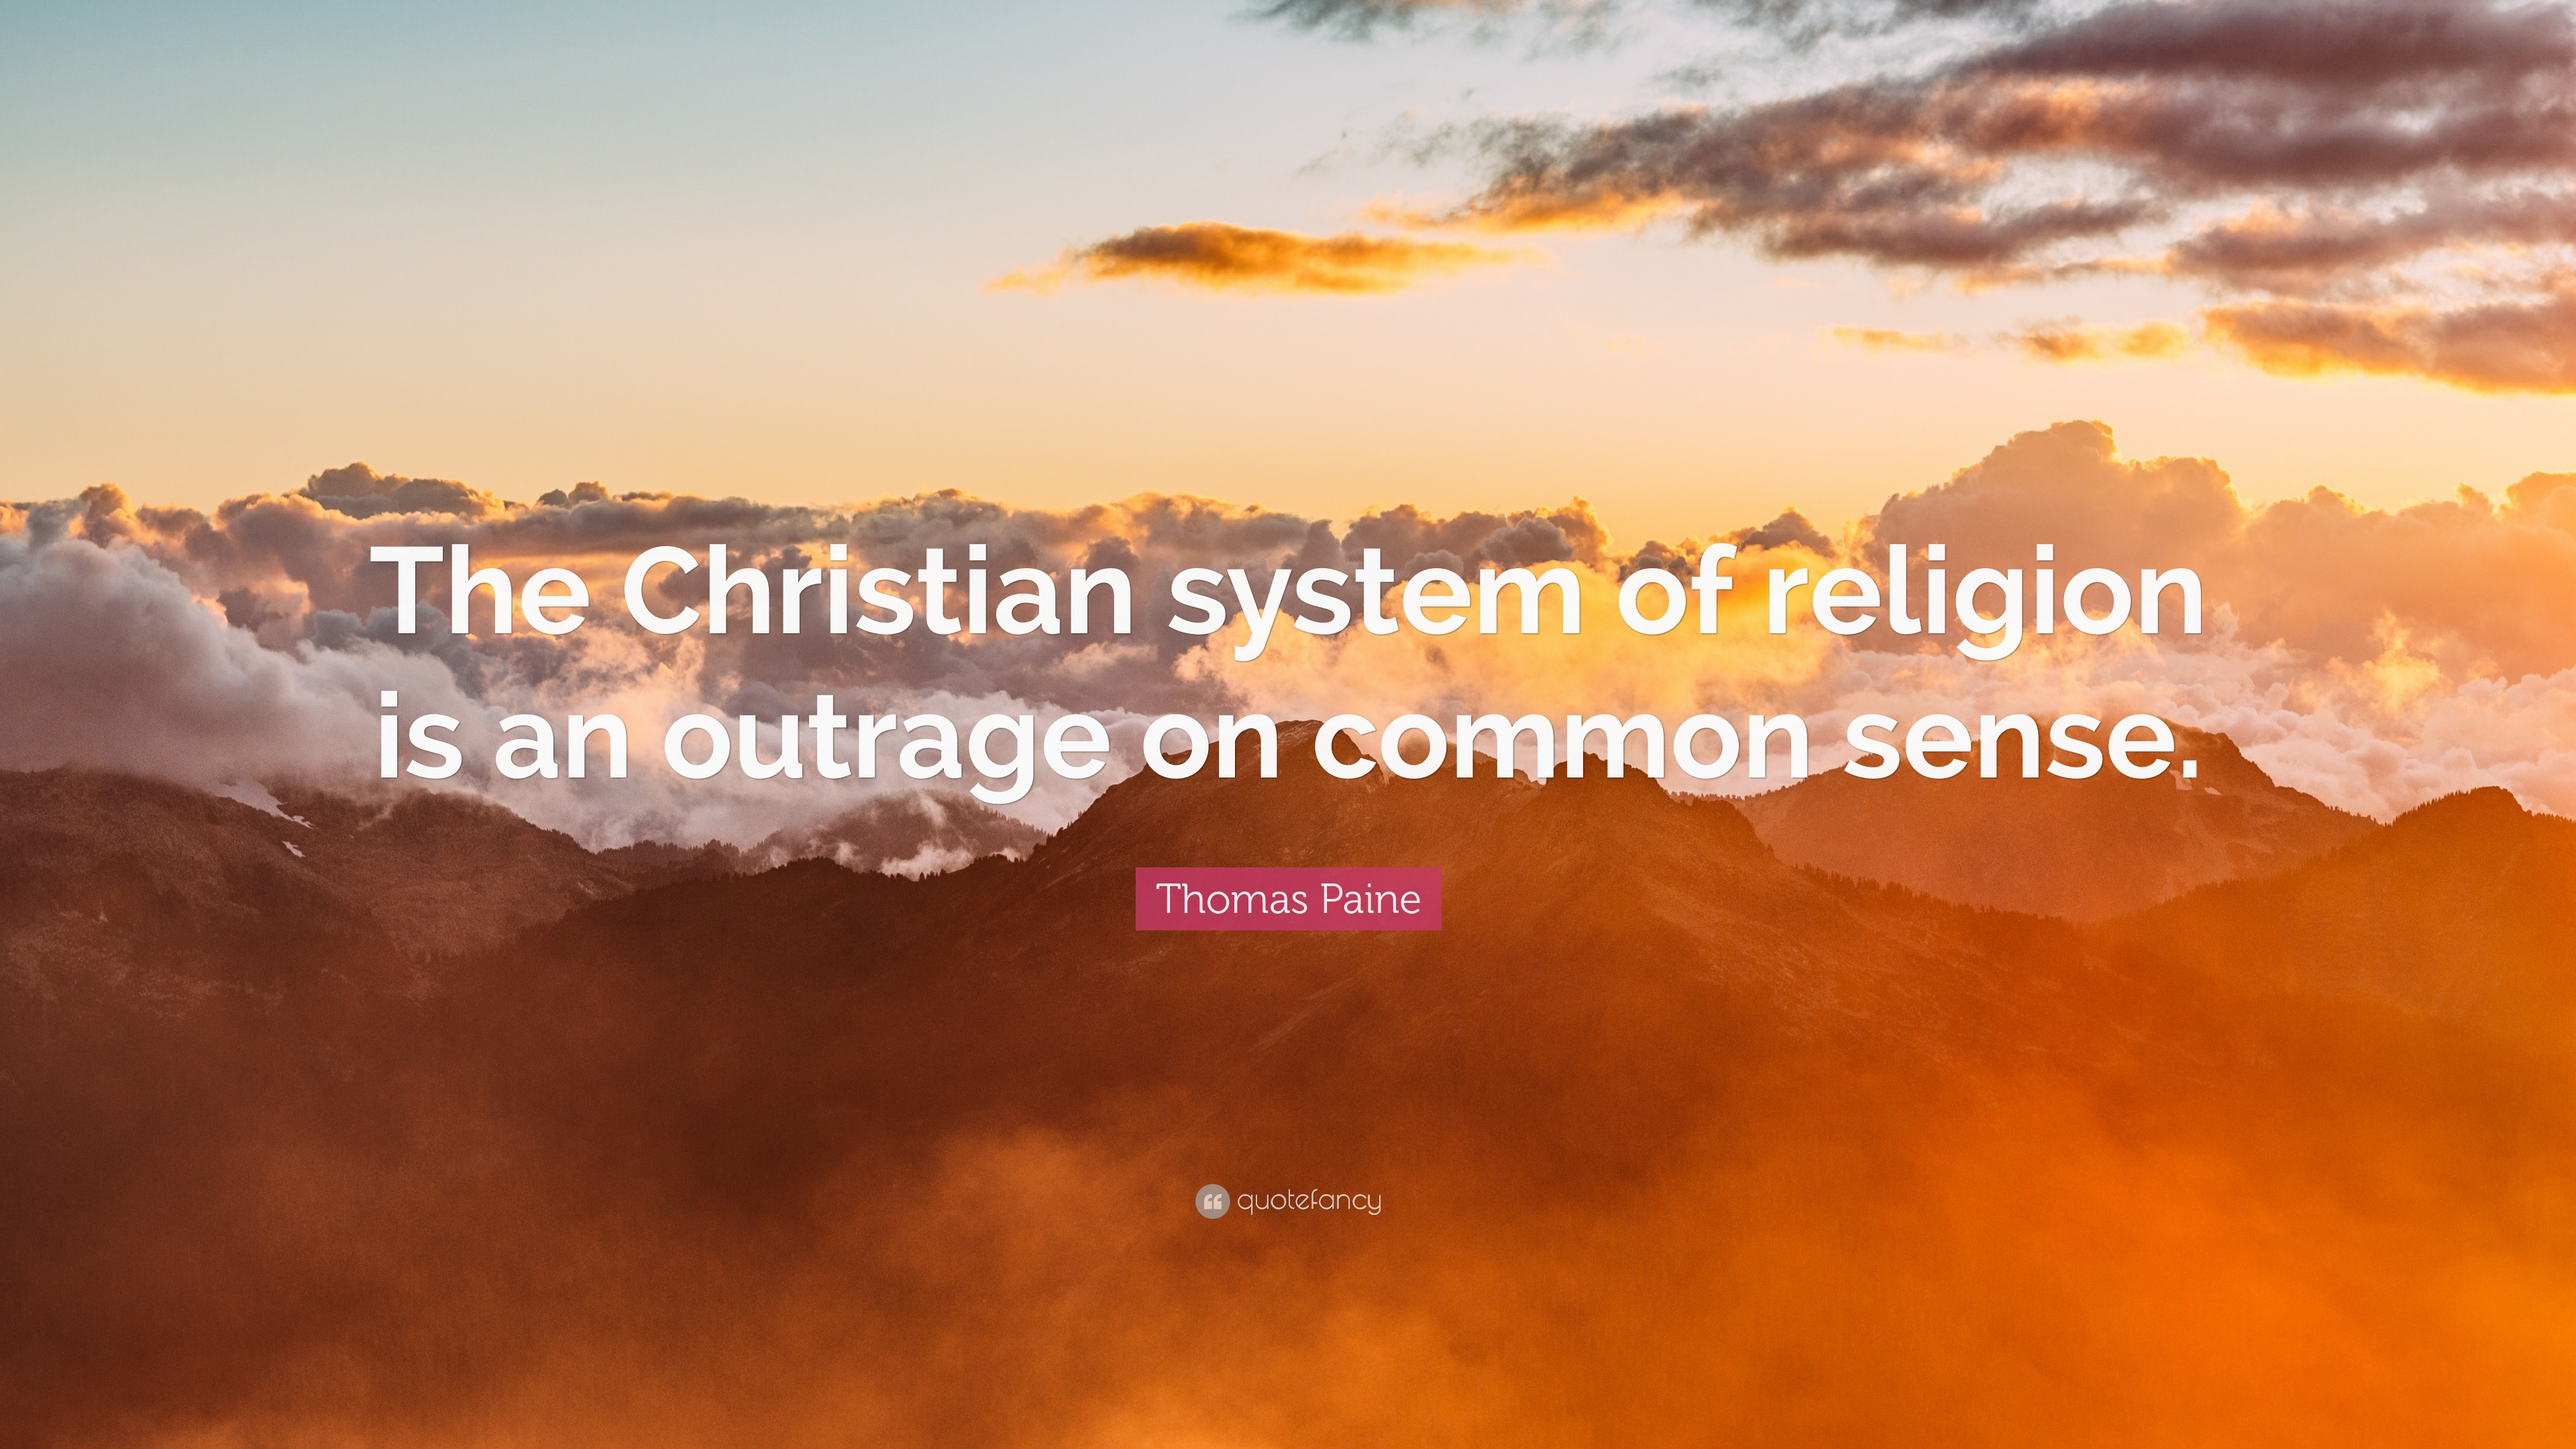 Common Sense Thomas Paine Quotes | Thomas Paine Quote The Christian System Of Religion Is An Outrage